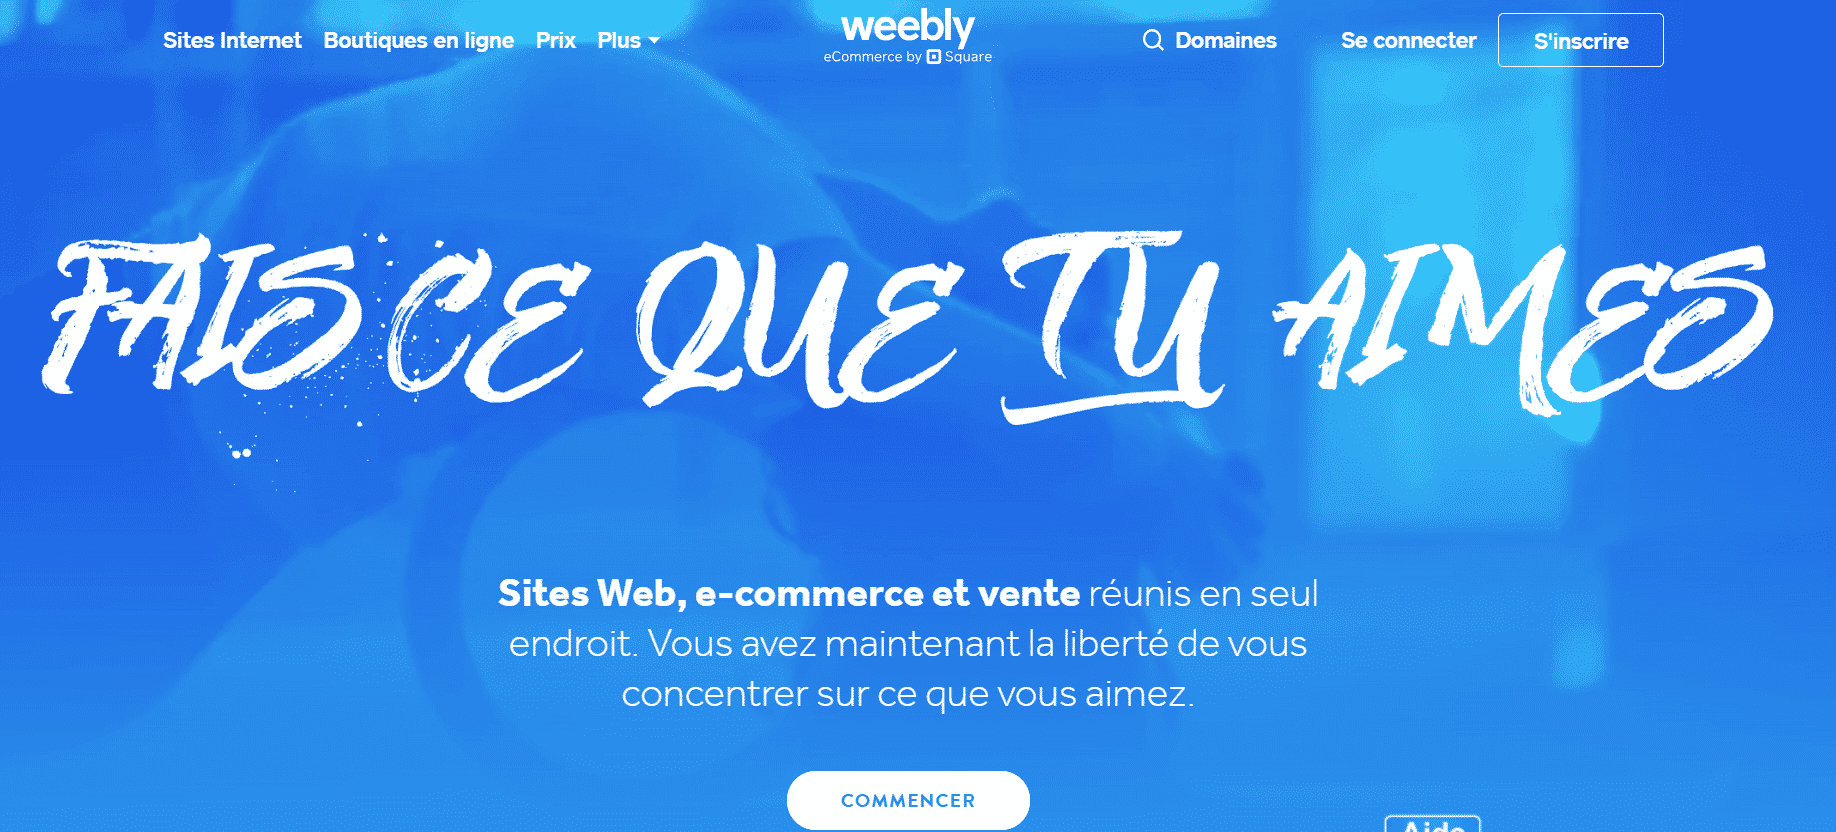 weebly accueil